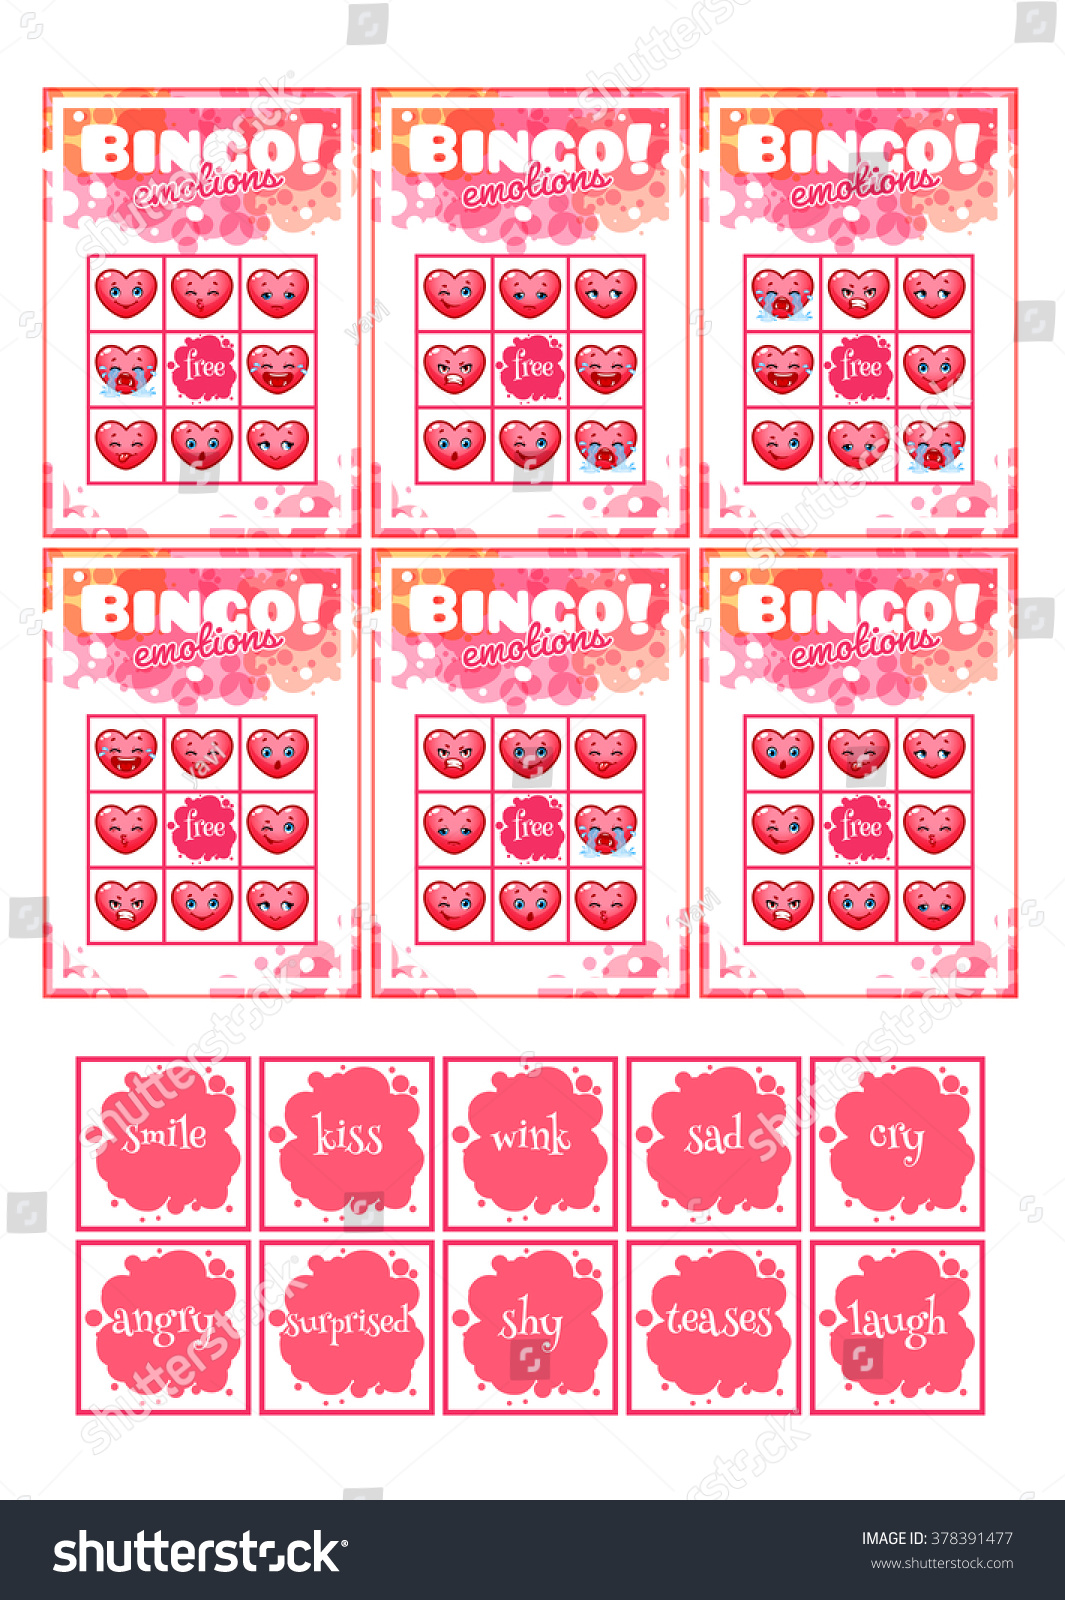 Printable Educational Bingo Game Preschool Kids Stock Vector